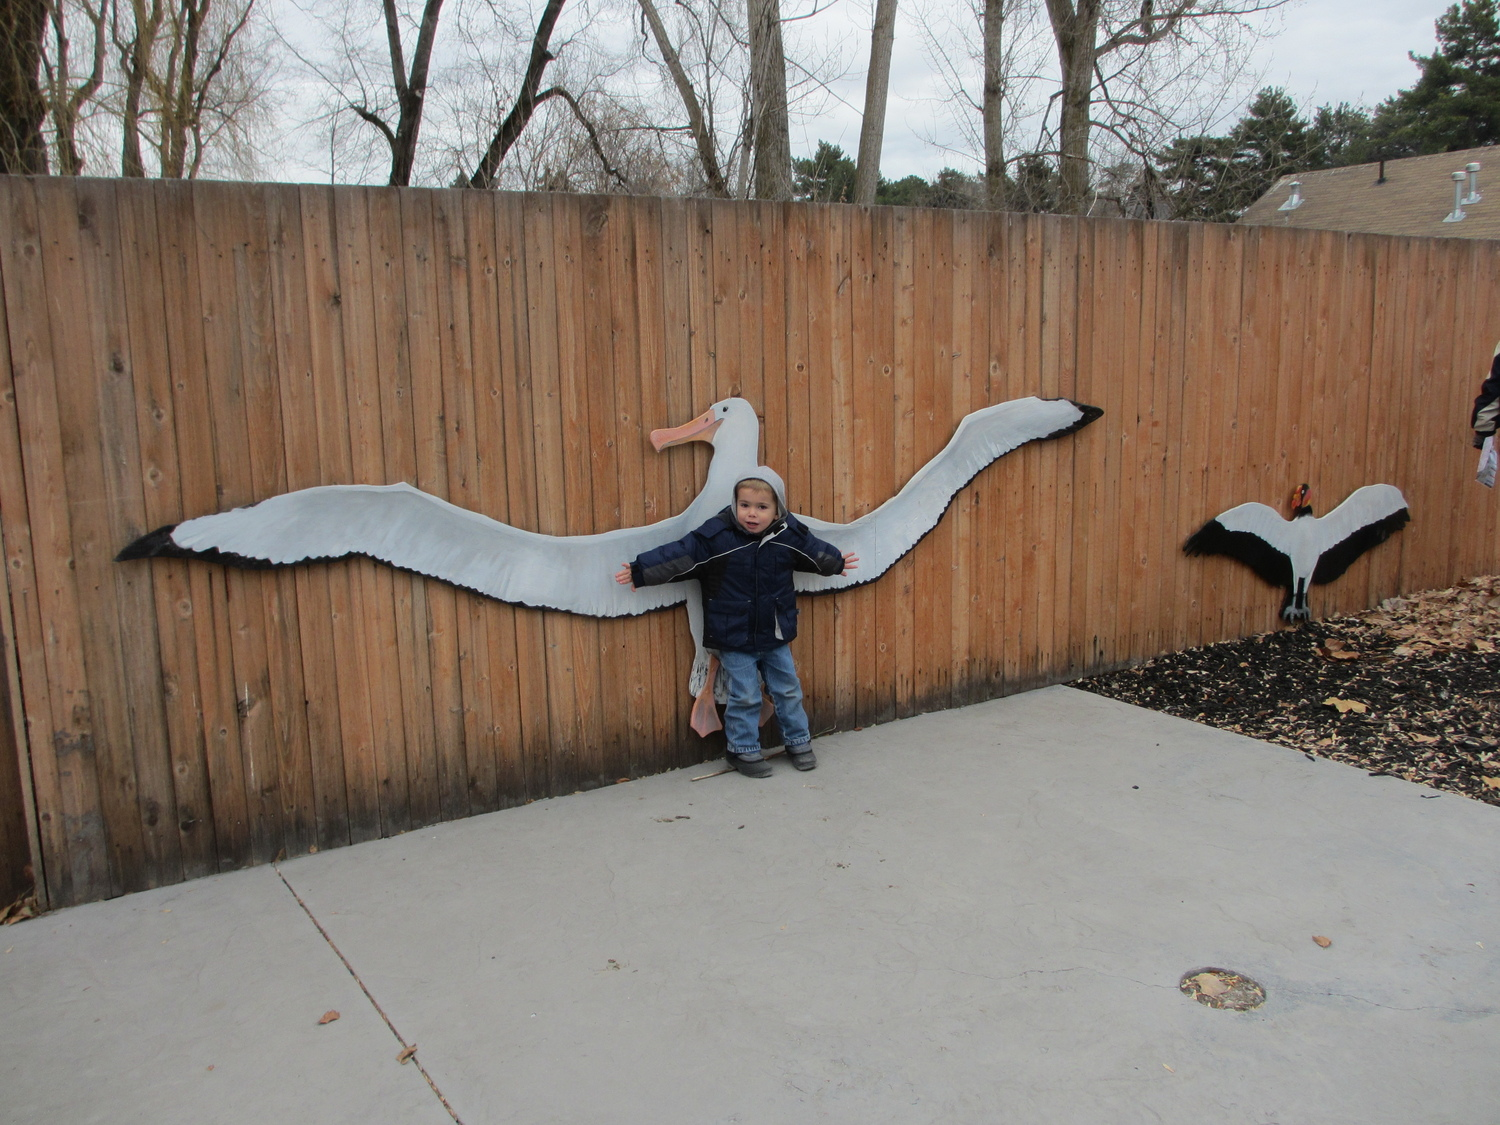 Wingspan comparison